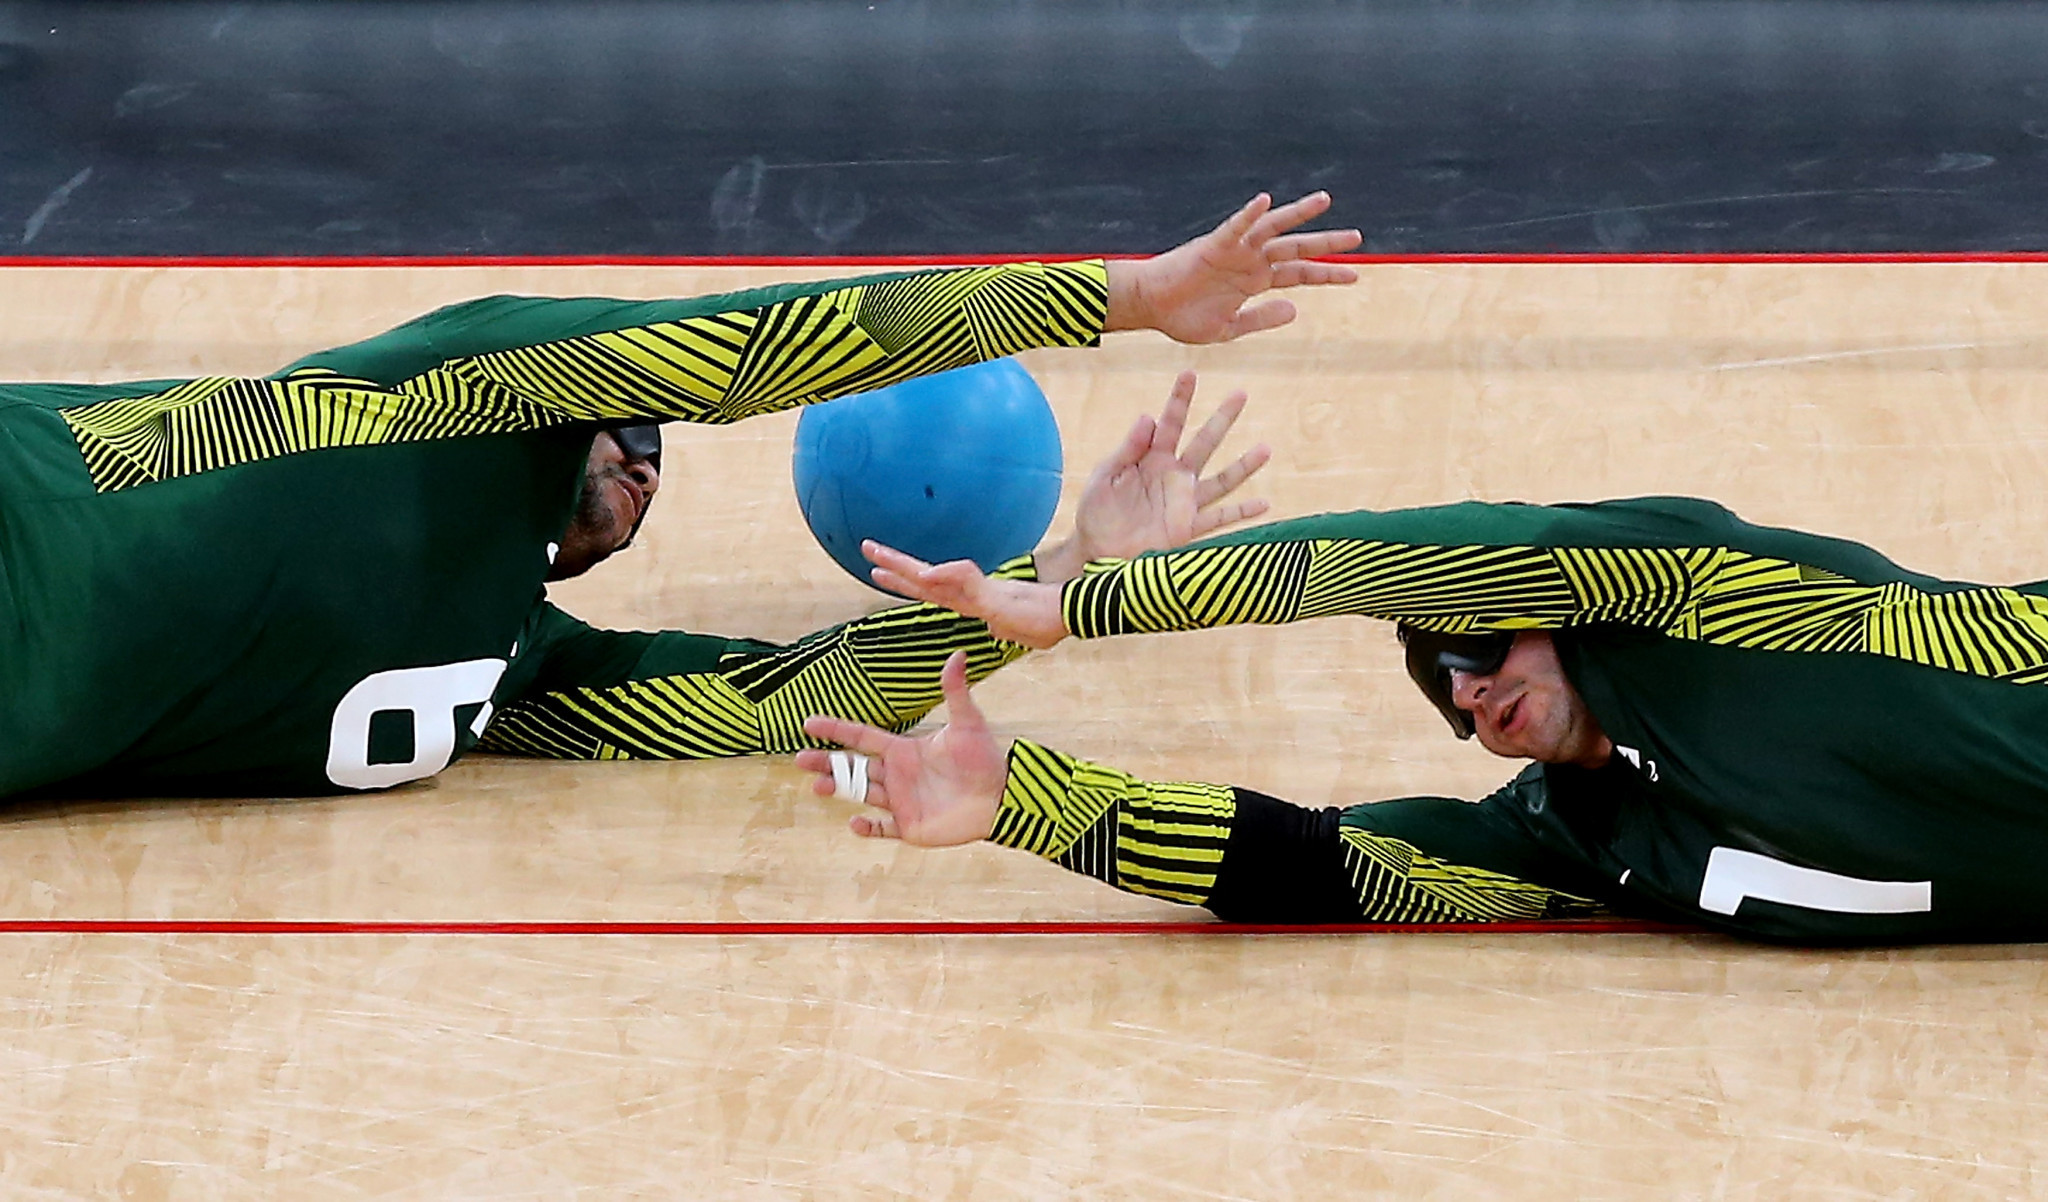 Cape Coast in Ghana has been named as the host of the 2021 African Goalball Championships ©Getty Images